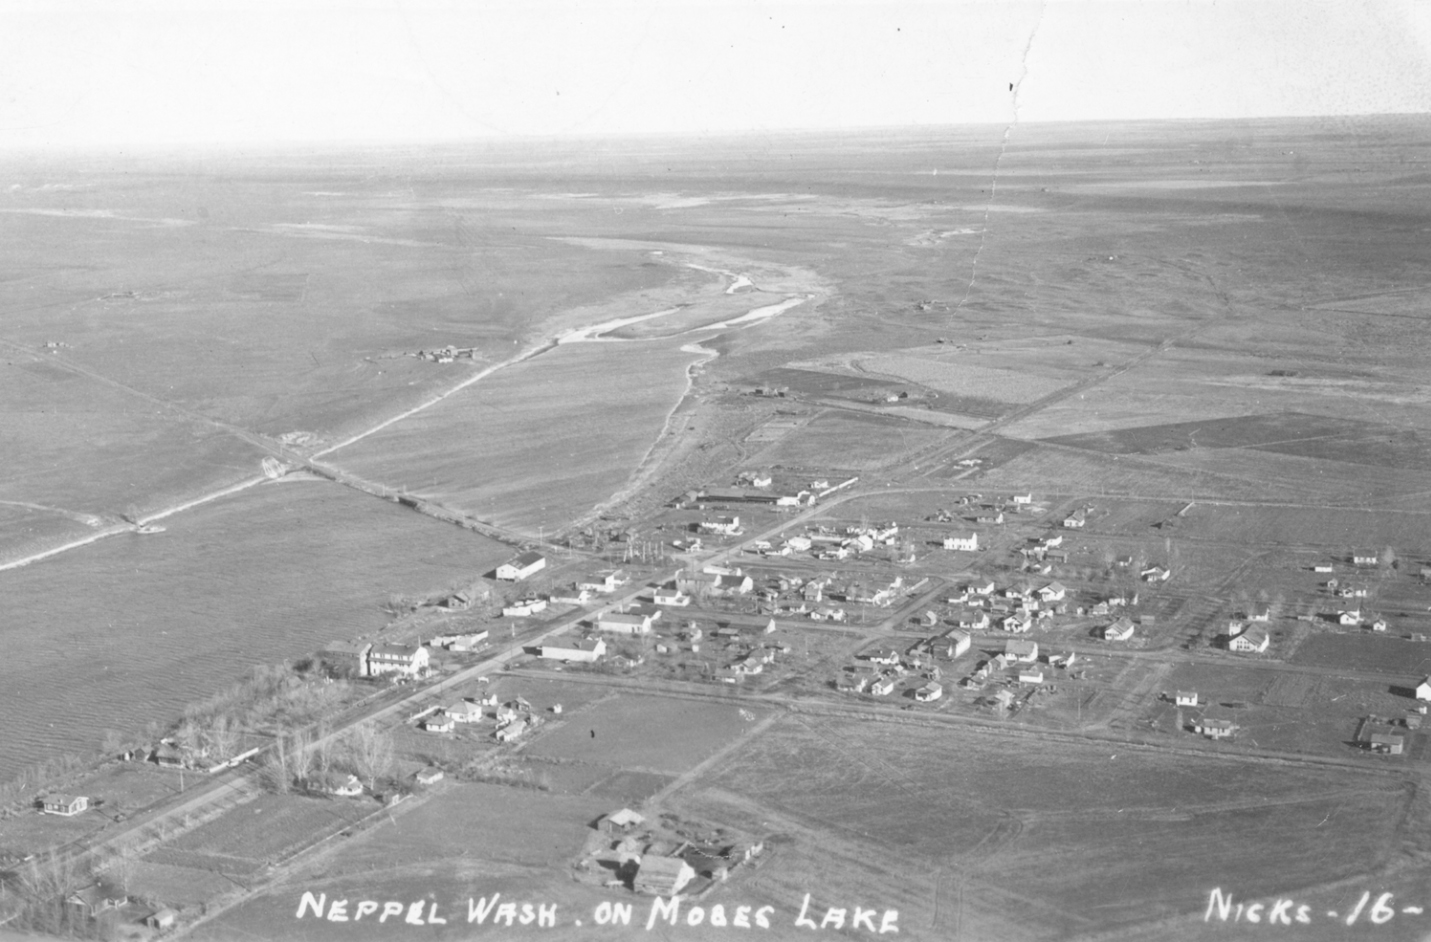 History of Moses Lake | Moses Lake, WA - Official Website